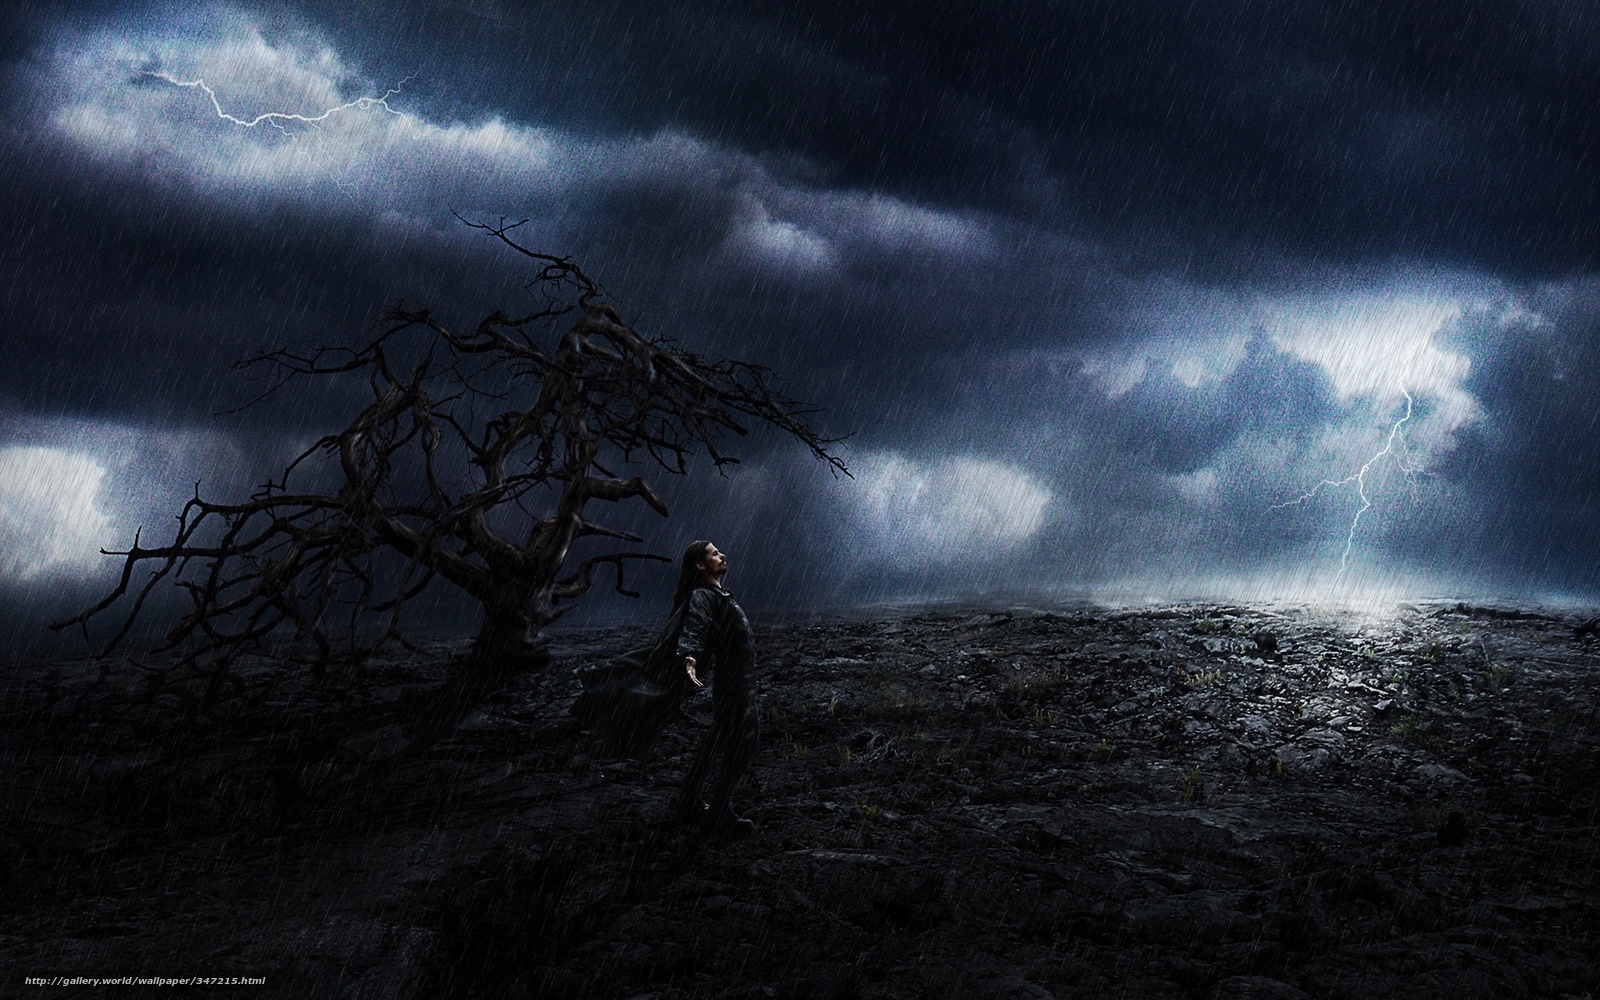 Download wallpaper man rain storm desktop wallpaper in the 1600x1000